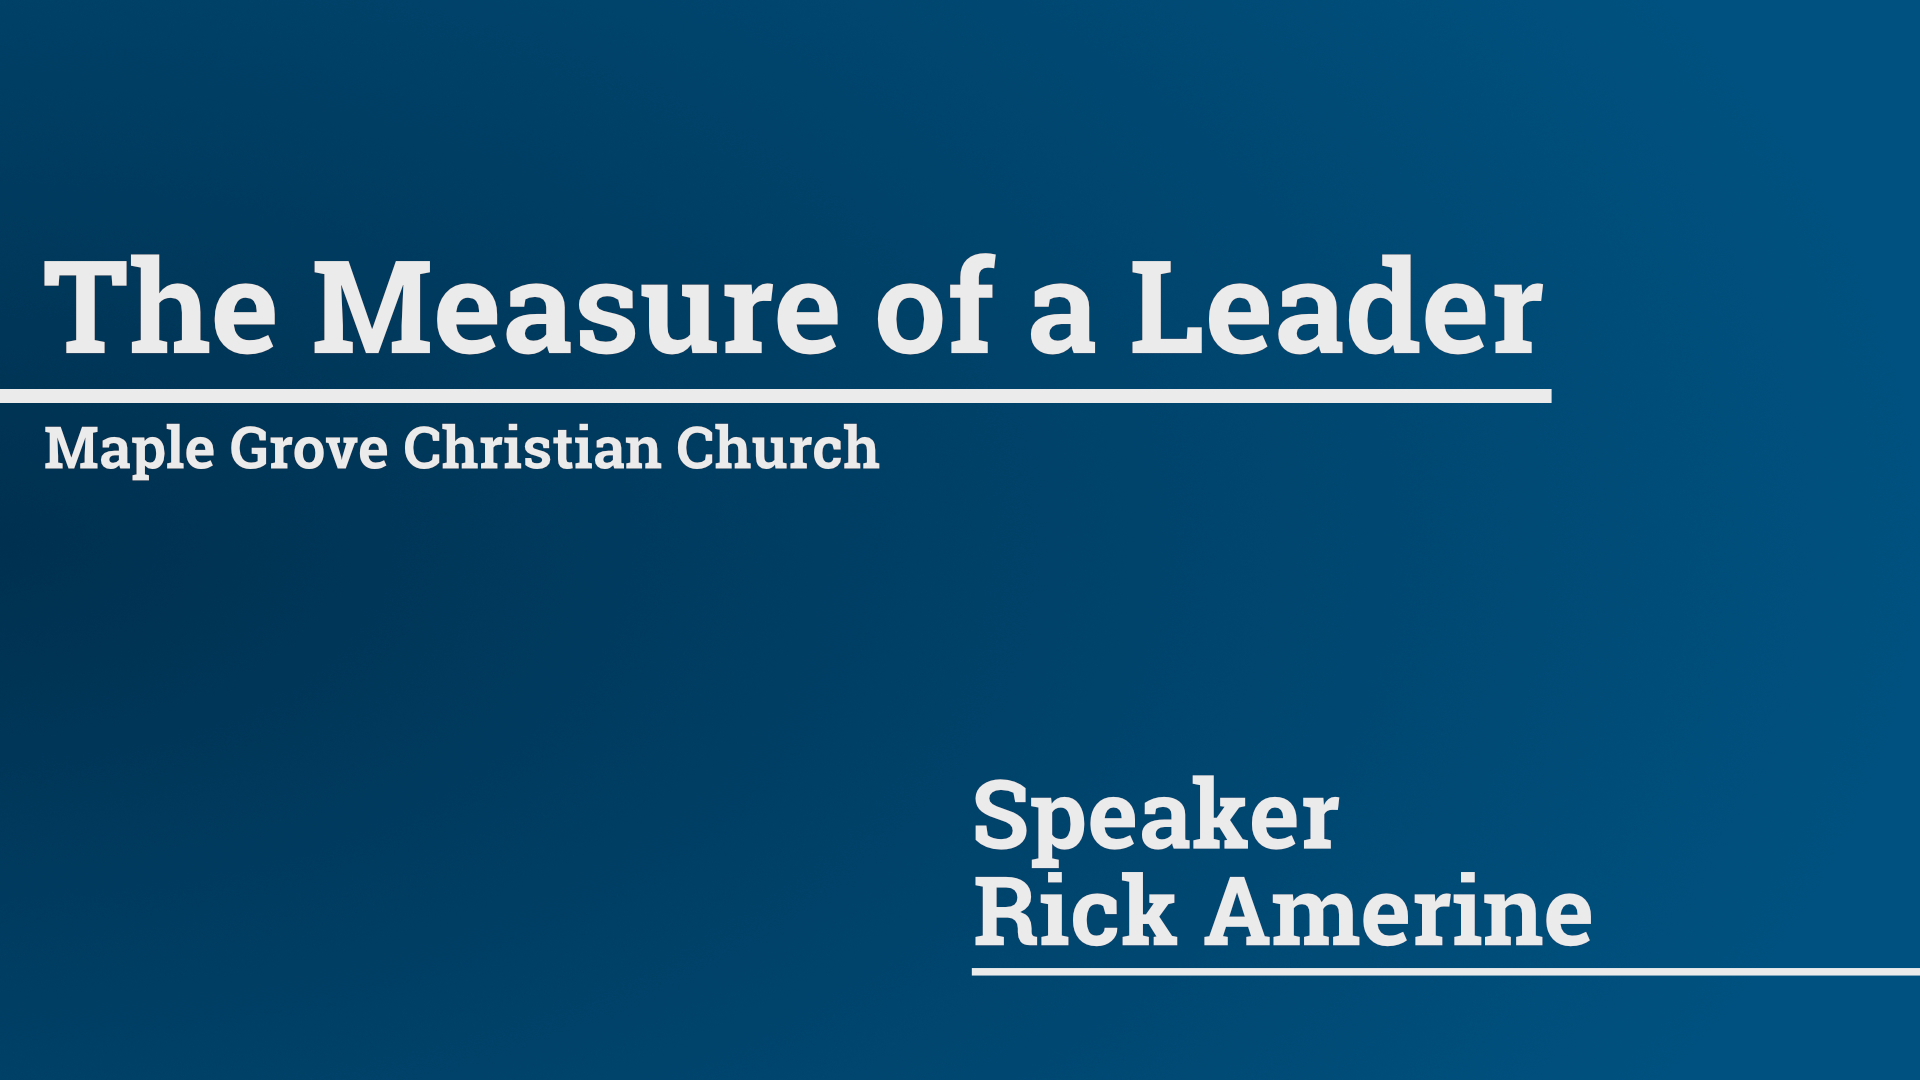 The Measure of a Leader • Feb. 21, 2016